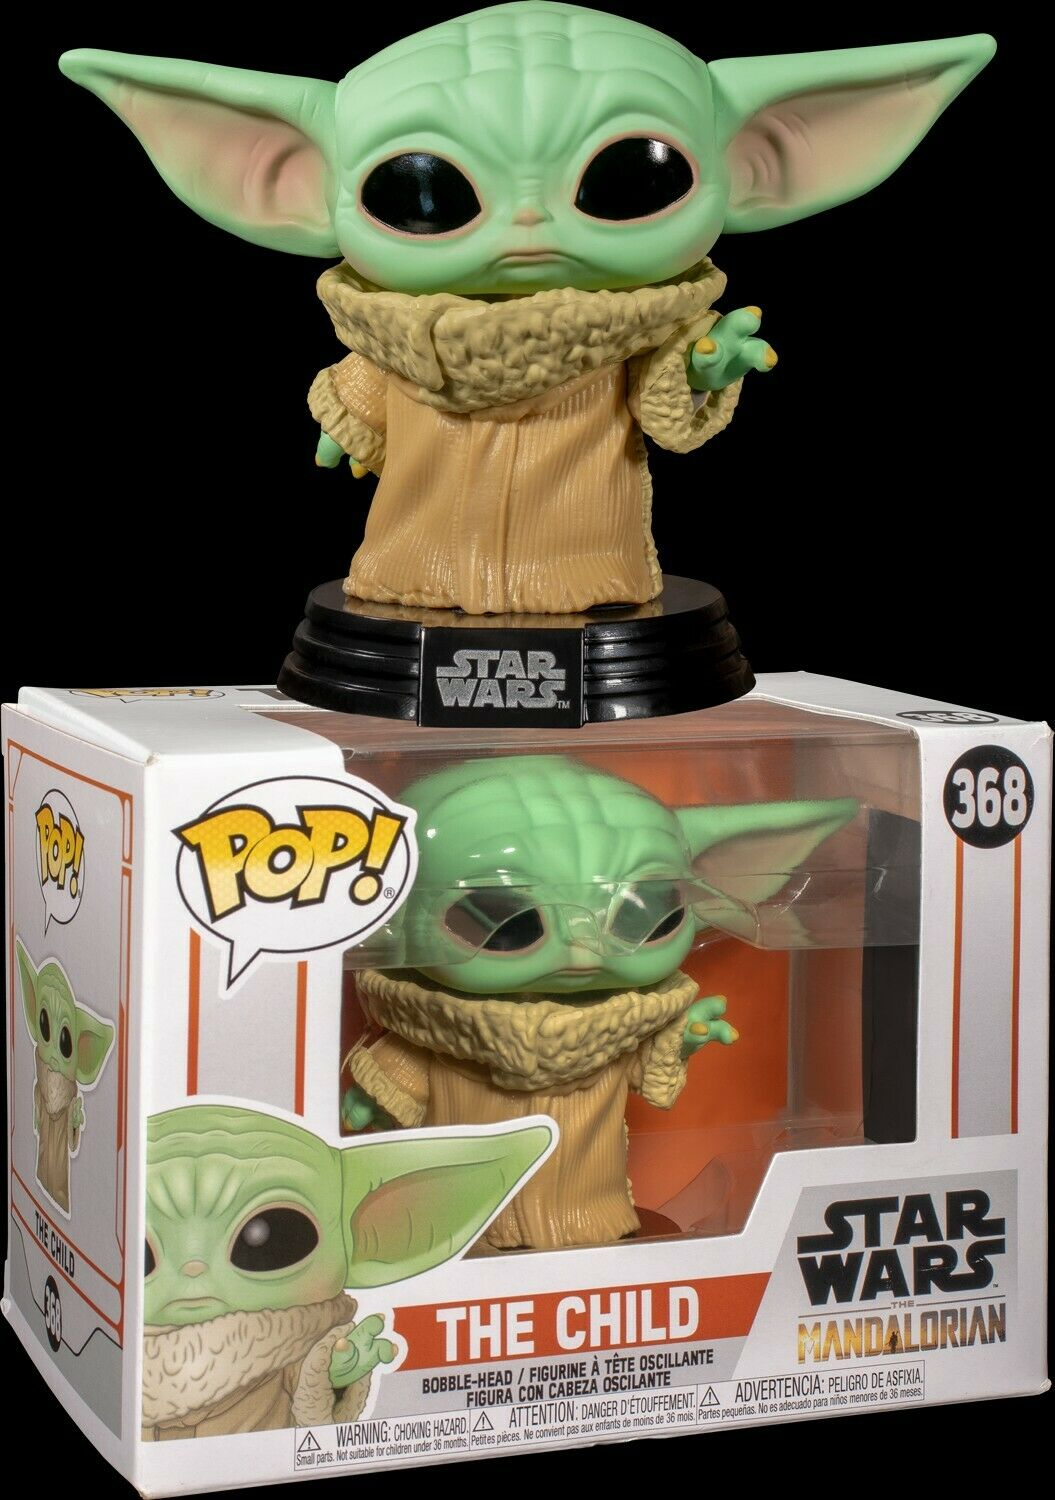 StarWars collection : STAR WARS: THE MANDALORIAN - L'ENFANT (BABY YODA) POP! FIGURINE